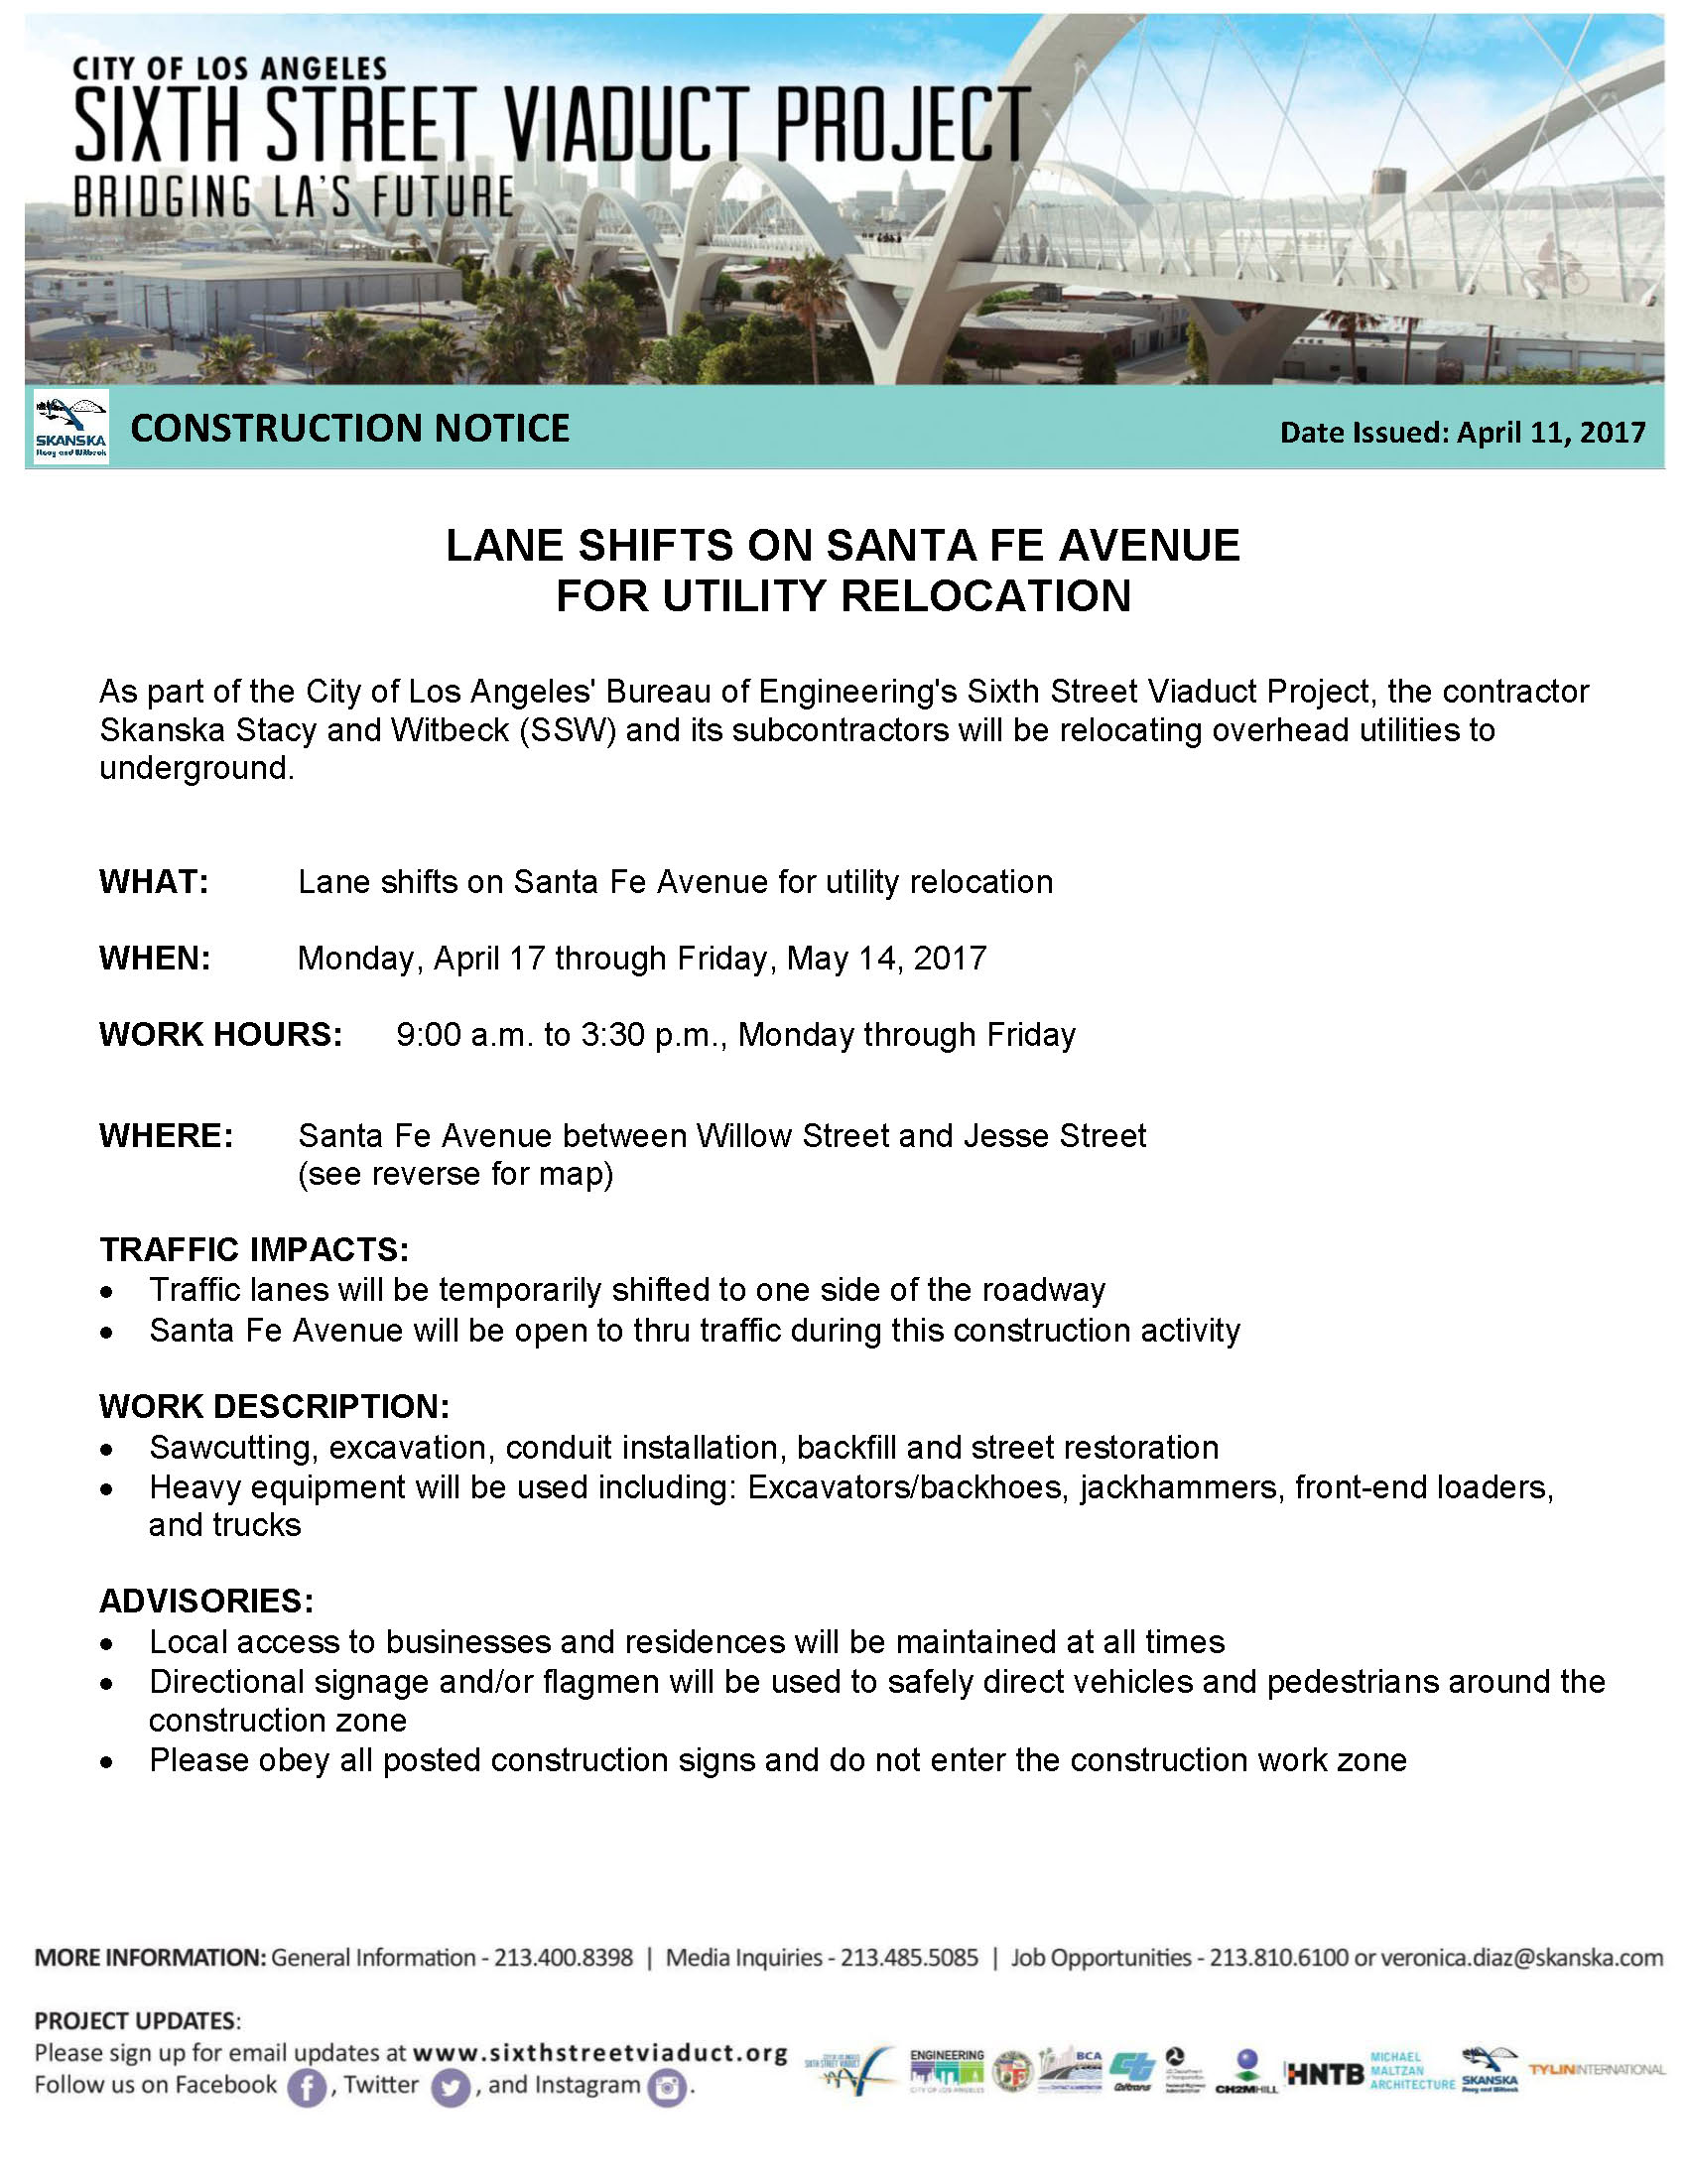 2017-04-11_SSW_Construction_Notice_-_Lane_Shifts_on_Santa_Fe_Ave_for_Utility_Relocation_Page_1.jpg